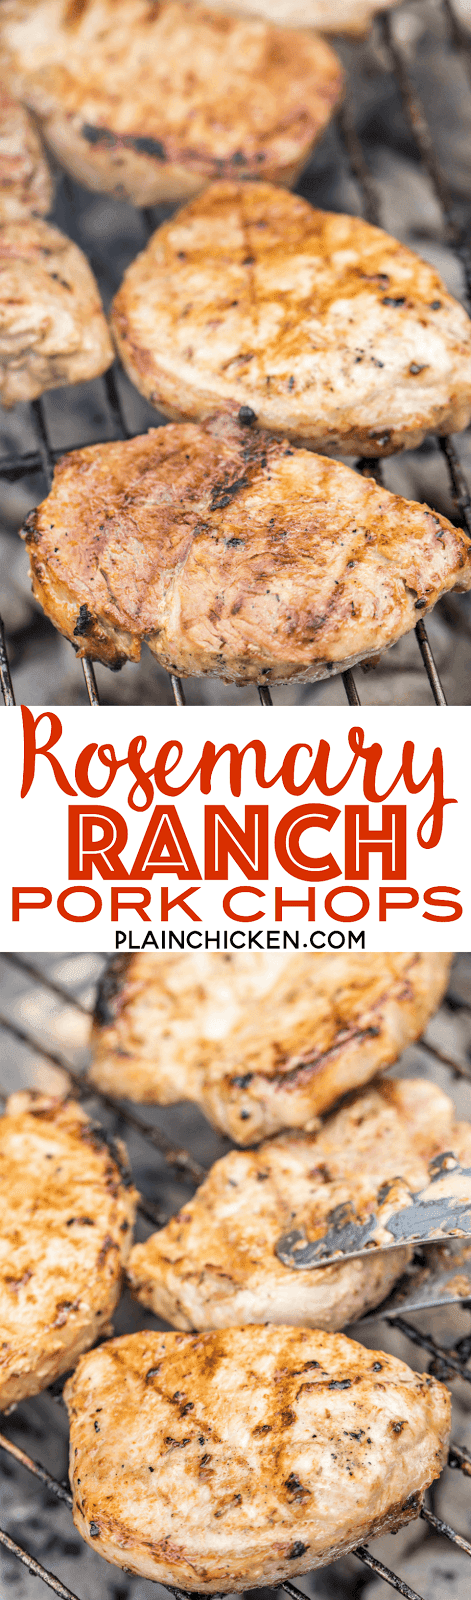 Rosemary Ranch Pork Chops - seriously delicious! Super easy and packed full of AMAZING flavor!! Best pork chop I've ever eaten!! Let the pork chops marinate overnight for maximum flavor! Only a few simple ingredients for an incredible dinner!! Pork chops, olive oil, Ranch dressing, rosemary, garlic, Worcestershire sauce salt, pepper and sugar. We made these pork chops twice in one week! SO good! Make them ASAP!